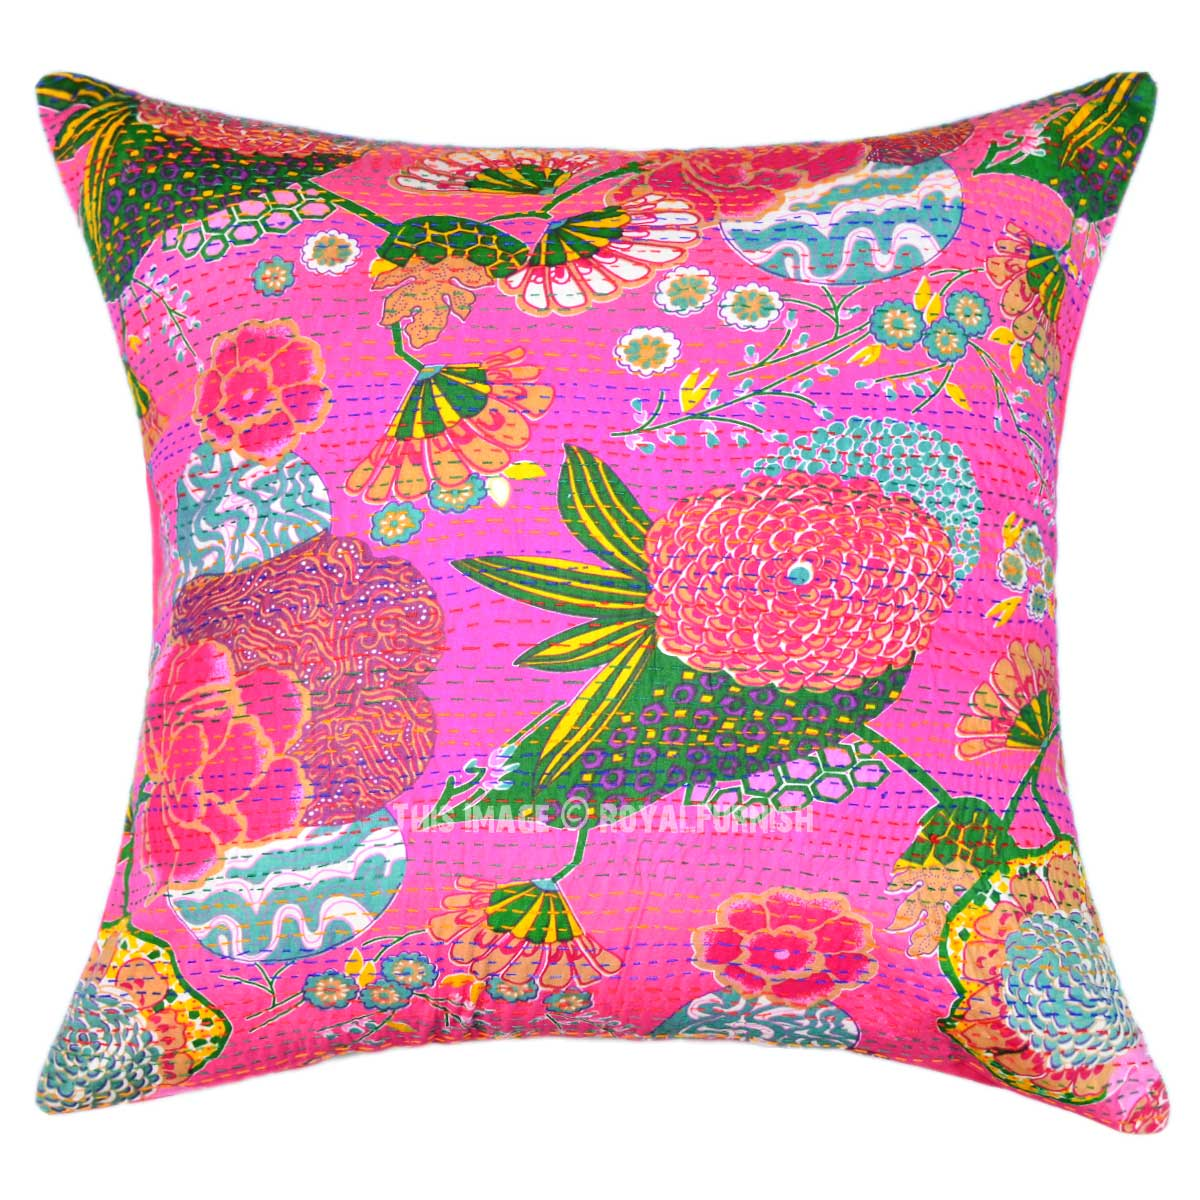 Oversized Decorative Pillow : Oversize Decorative Square Kantha Throw Pillow Cover, Boho Accent 24X24 - RoyalFurnish.com